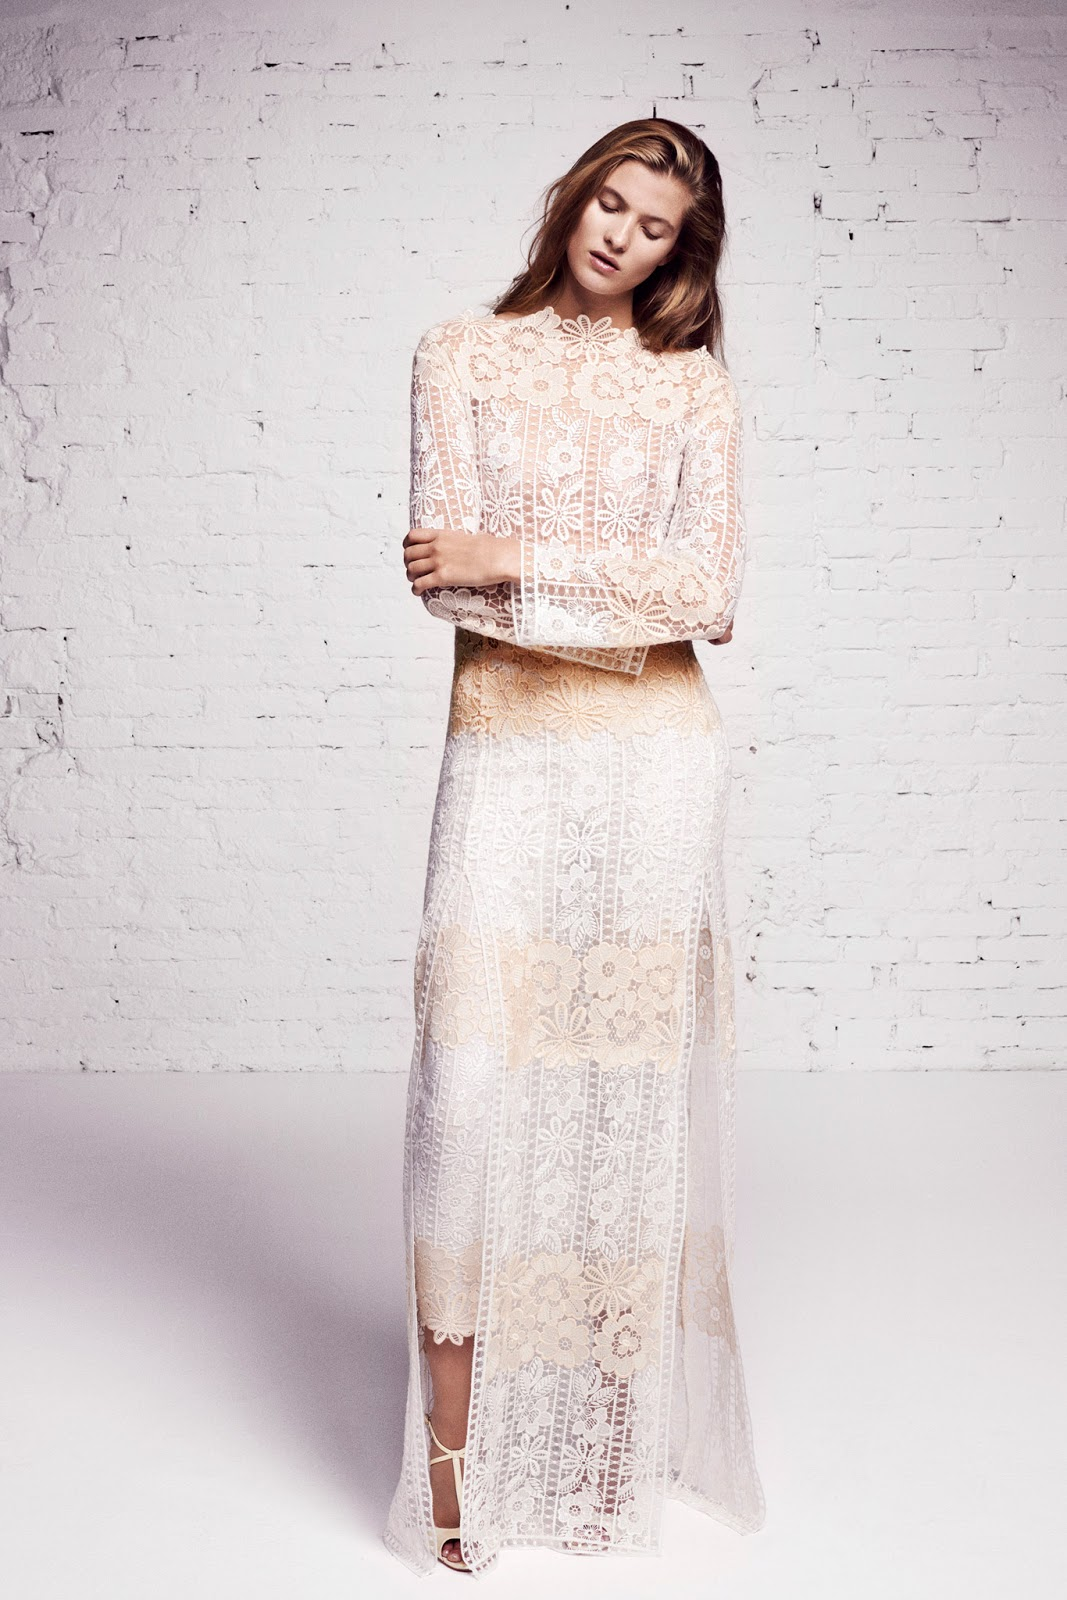 Blumarine Resort 2016 Look 5 via fashioned by love british fashion blog